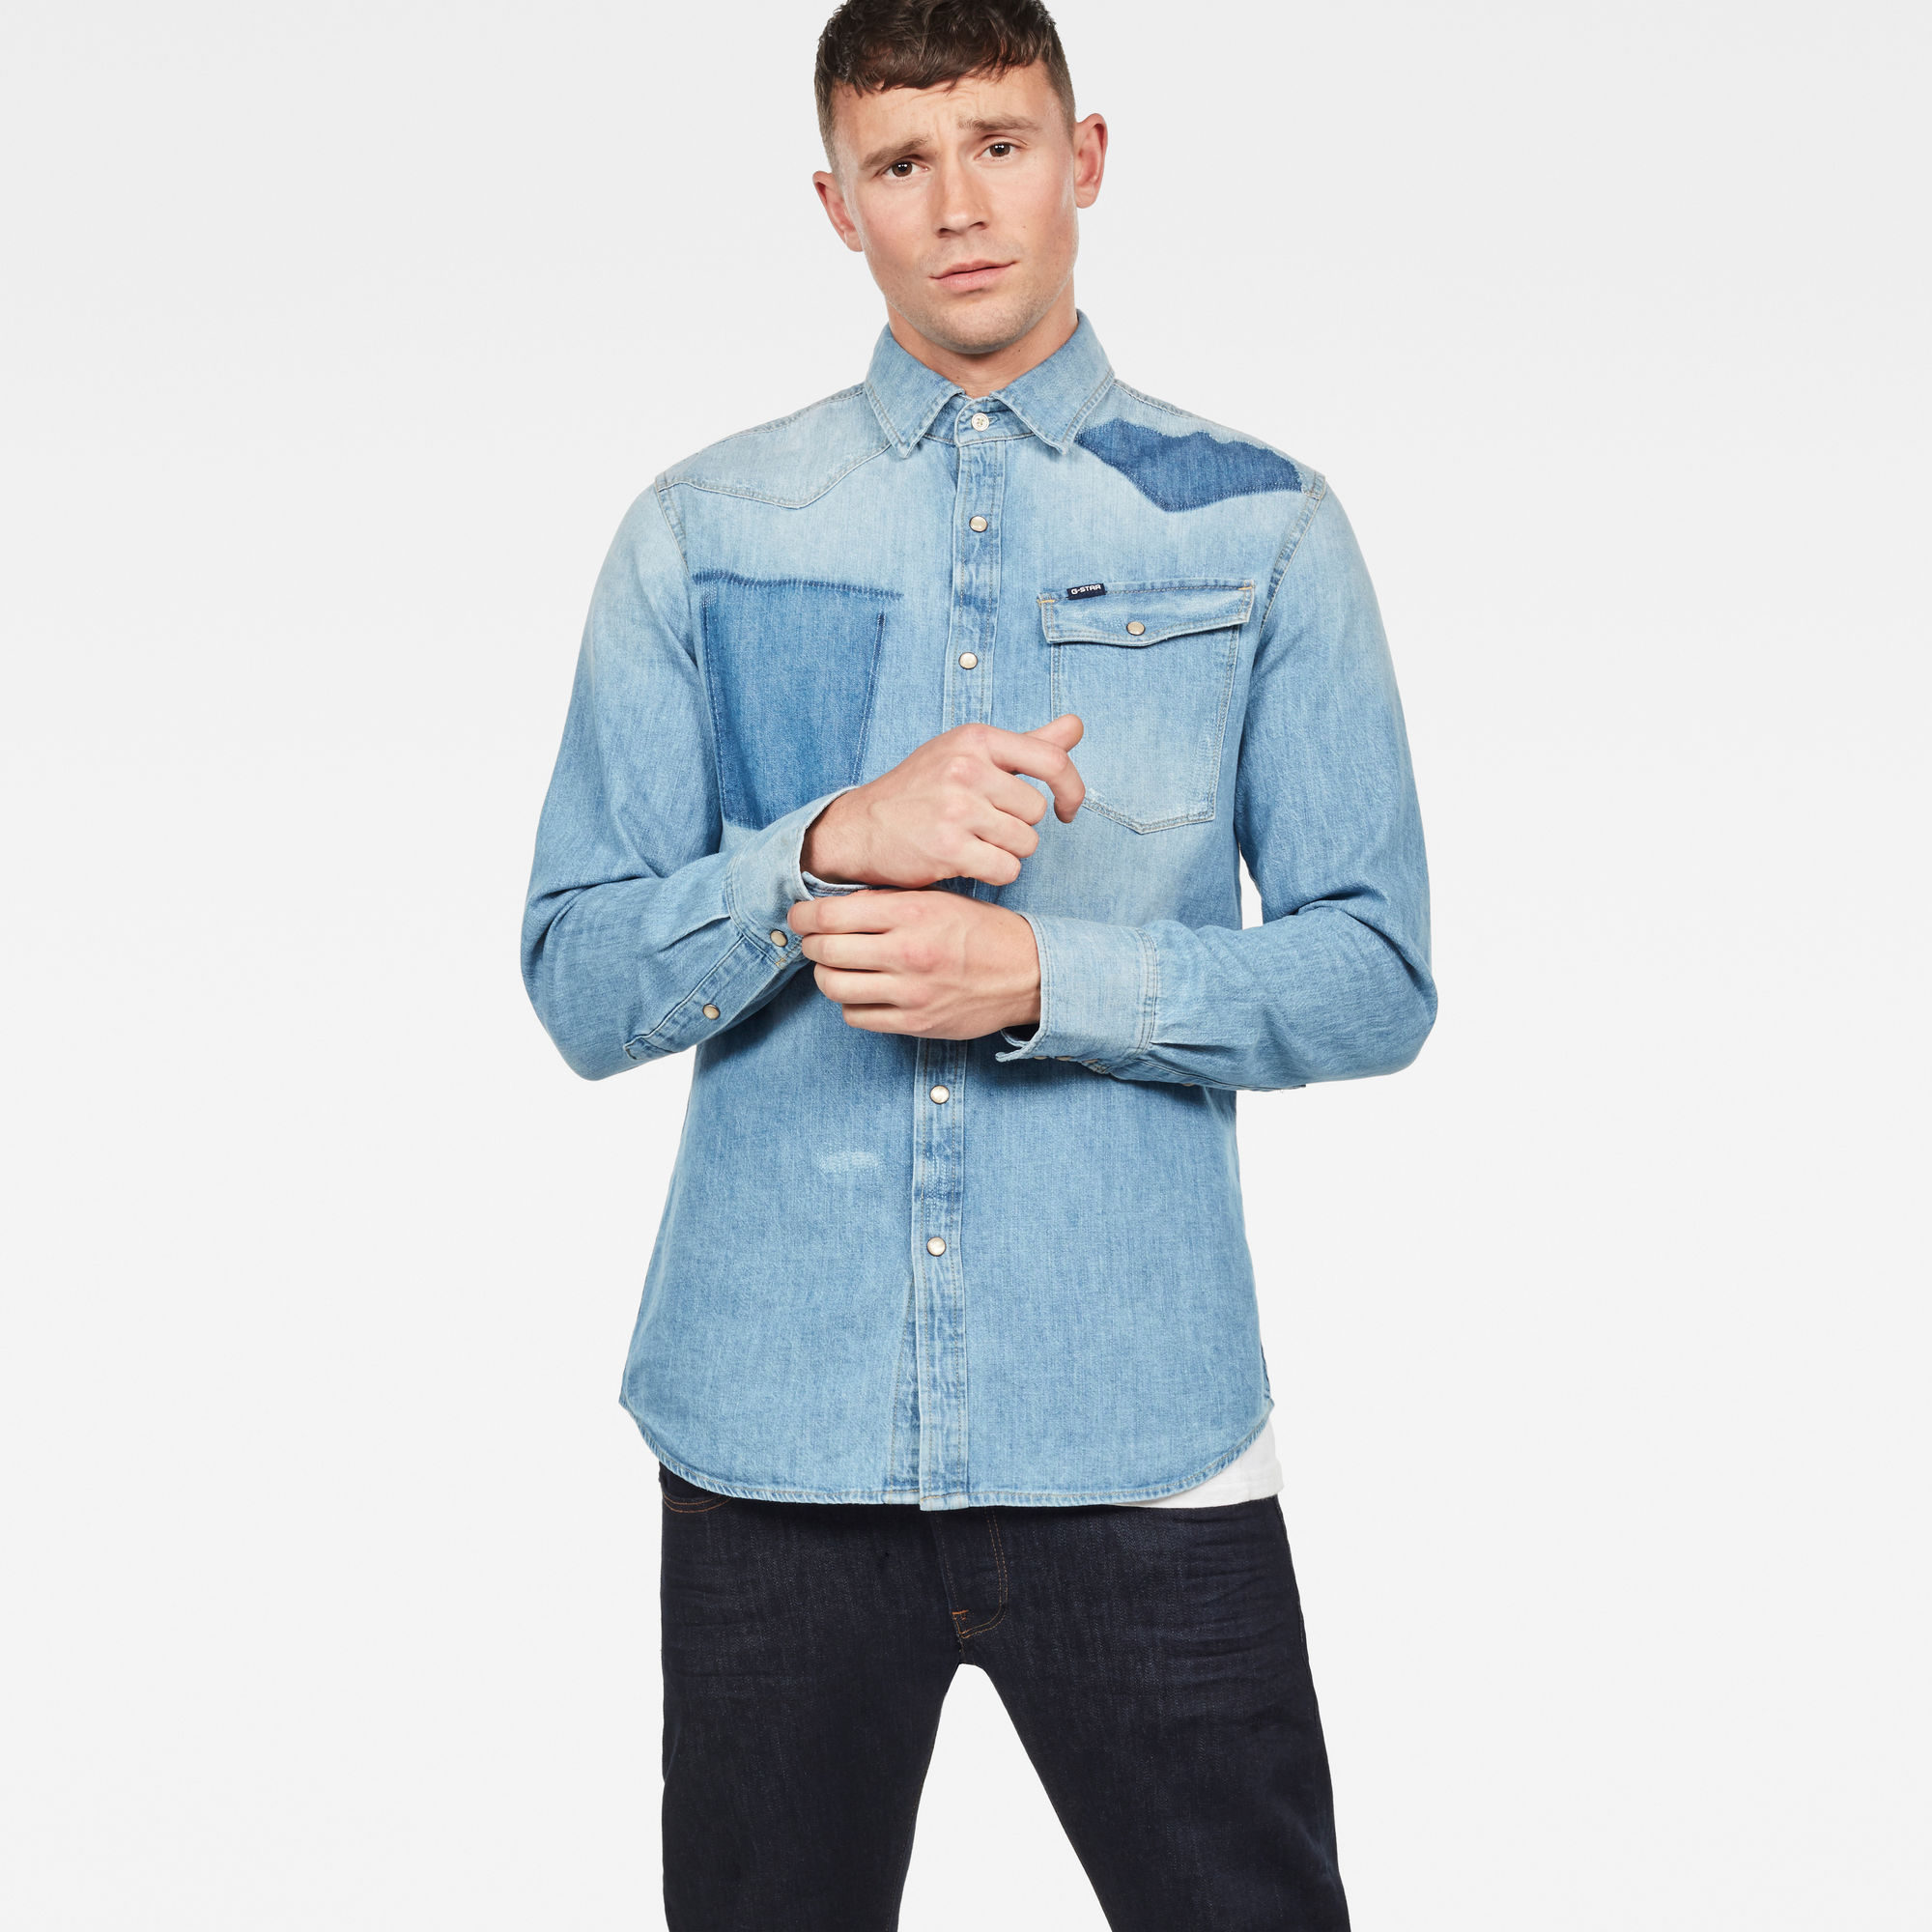 Image of G Star Raw 3301 Slim Shirt